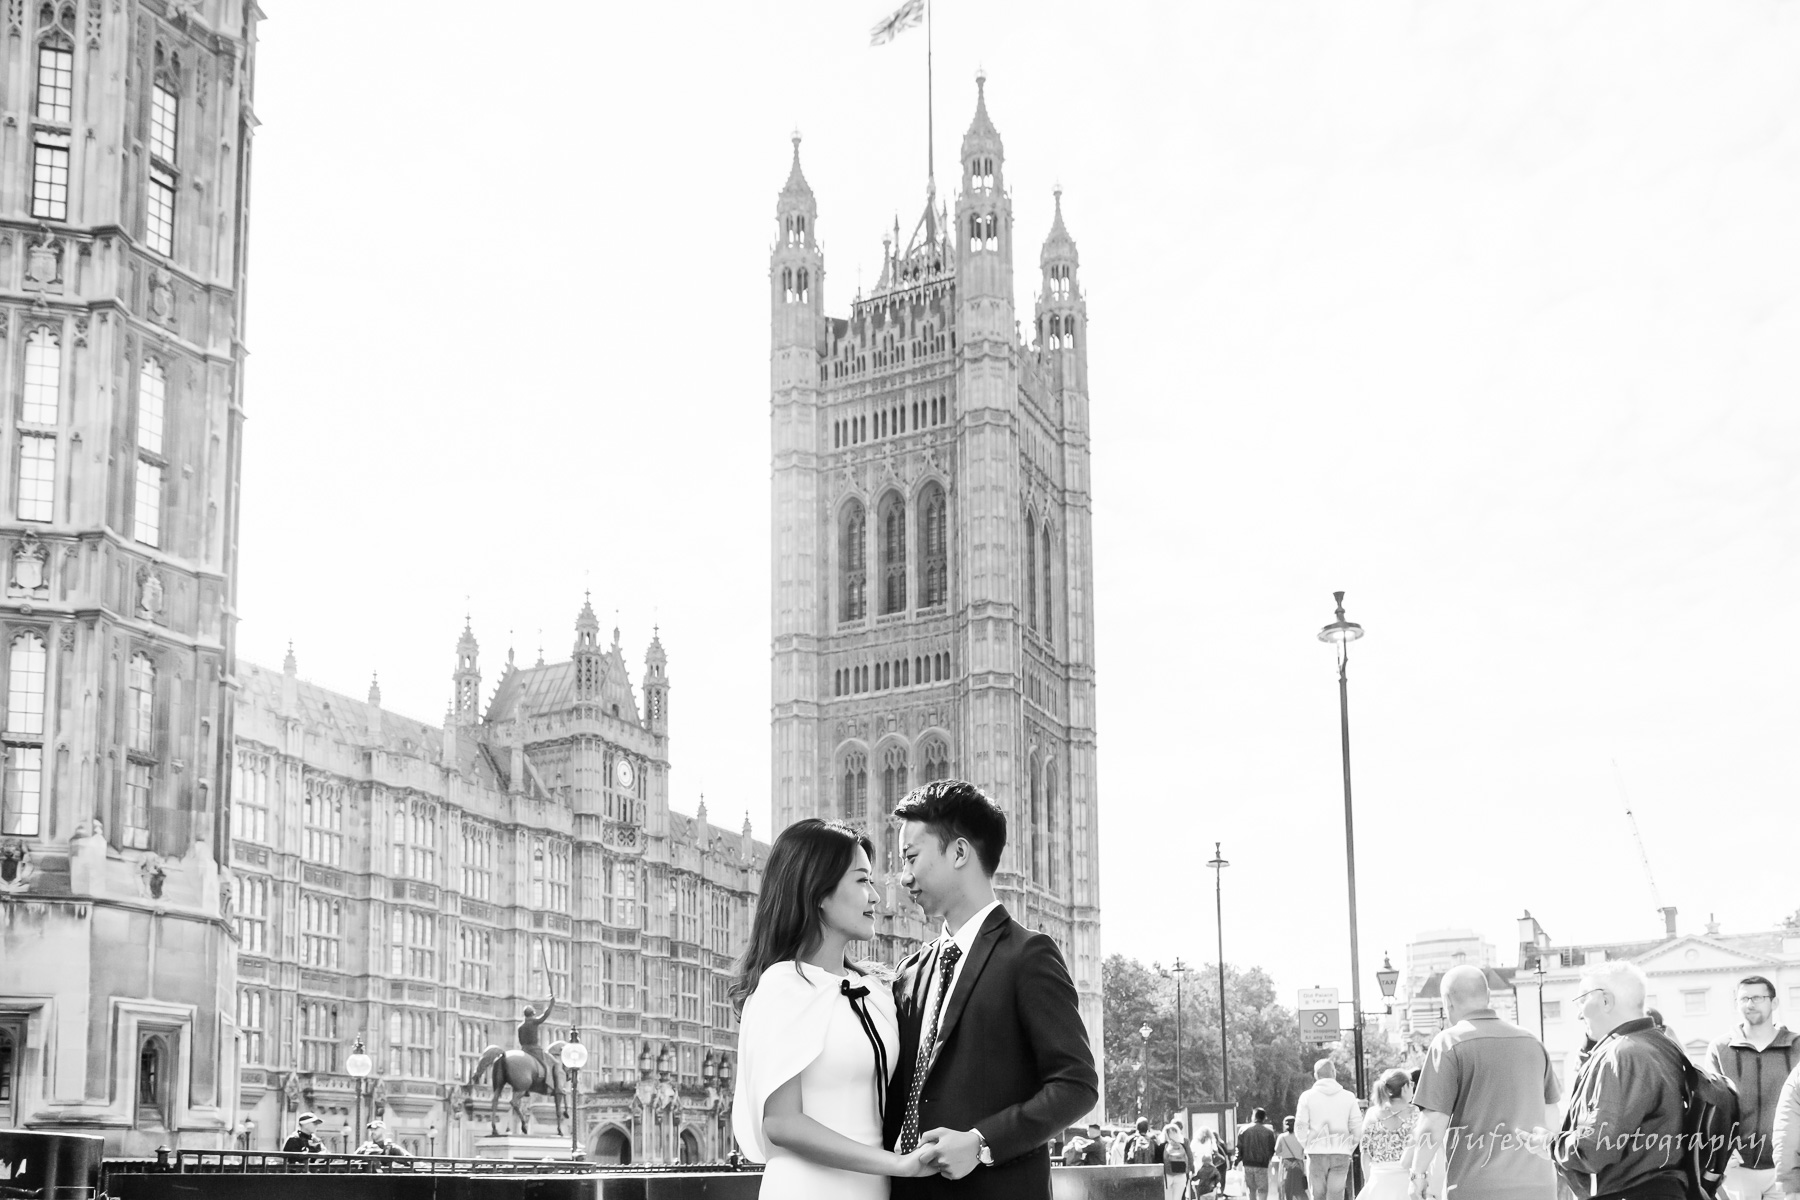 Wedding and Engagement Photography by Andreea Tufescu - C & E Engagement - PreWedding Photoshoot Central London Trafalgar Square